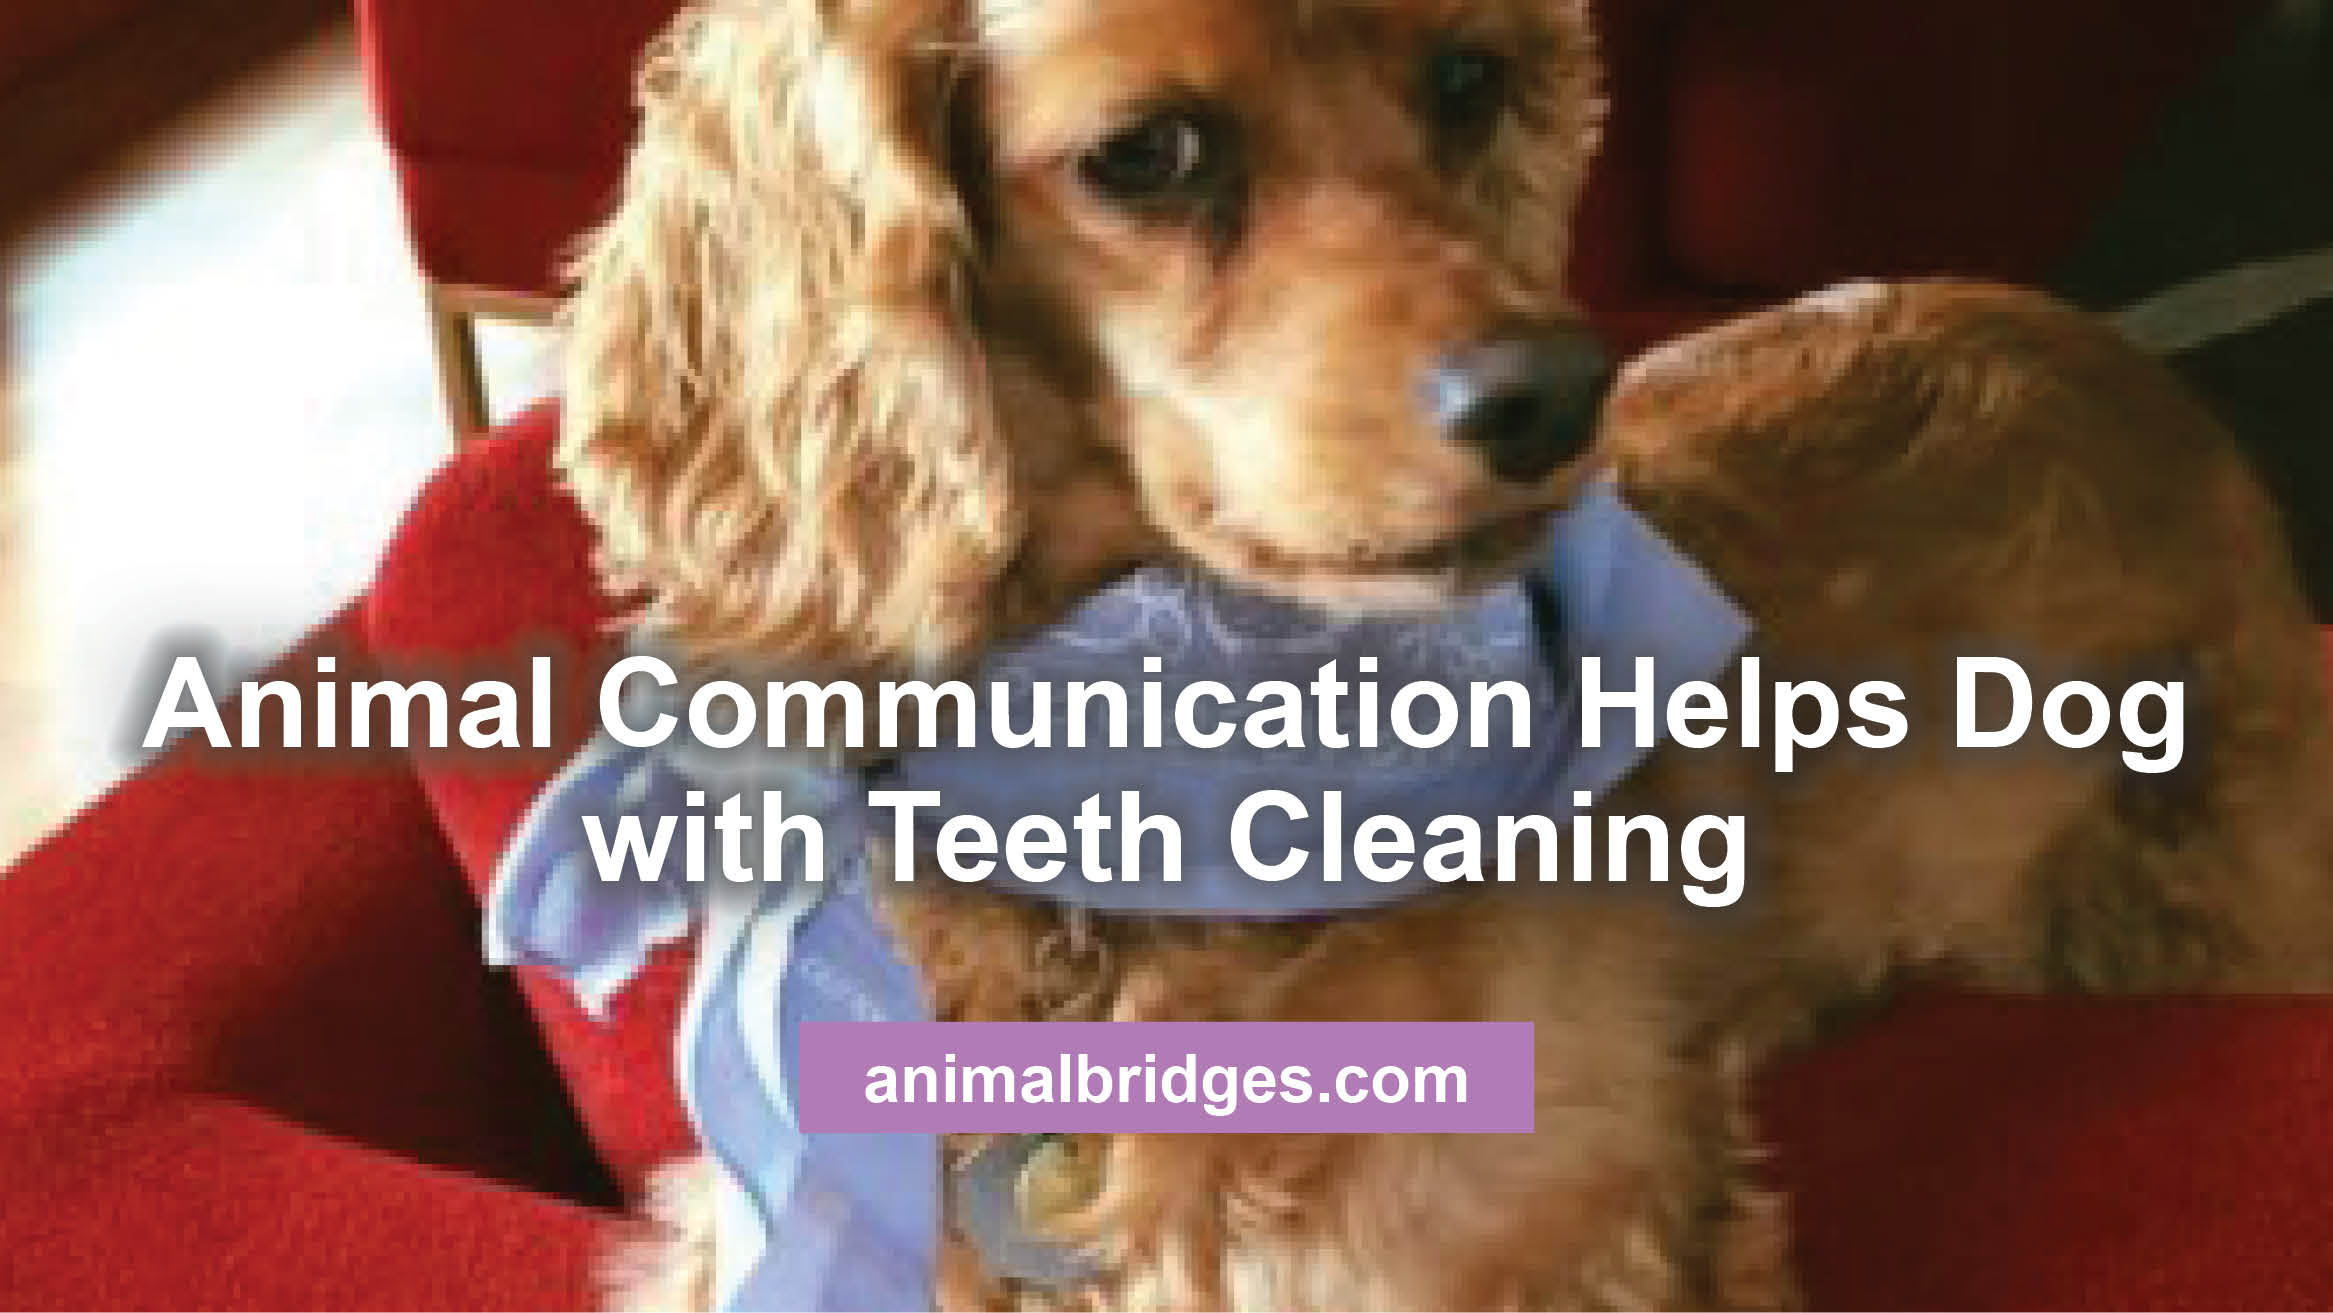 Animal communication helps dog with teeth cleaning.